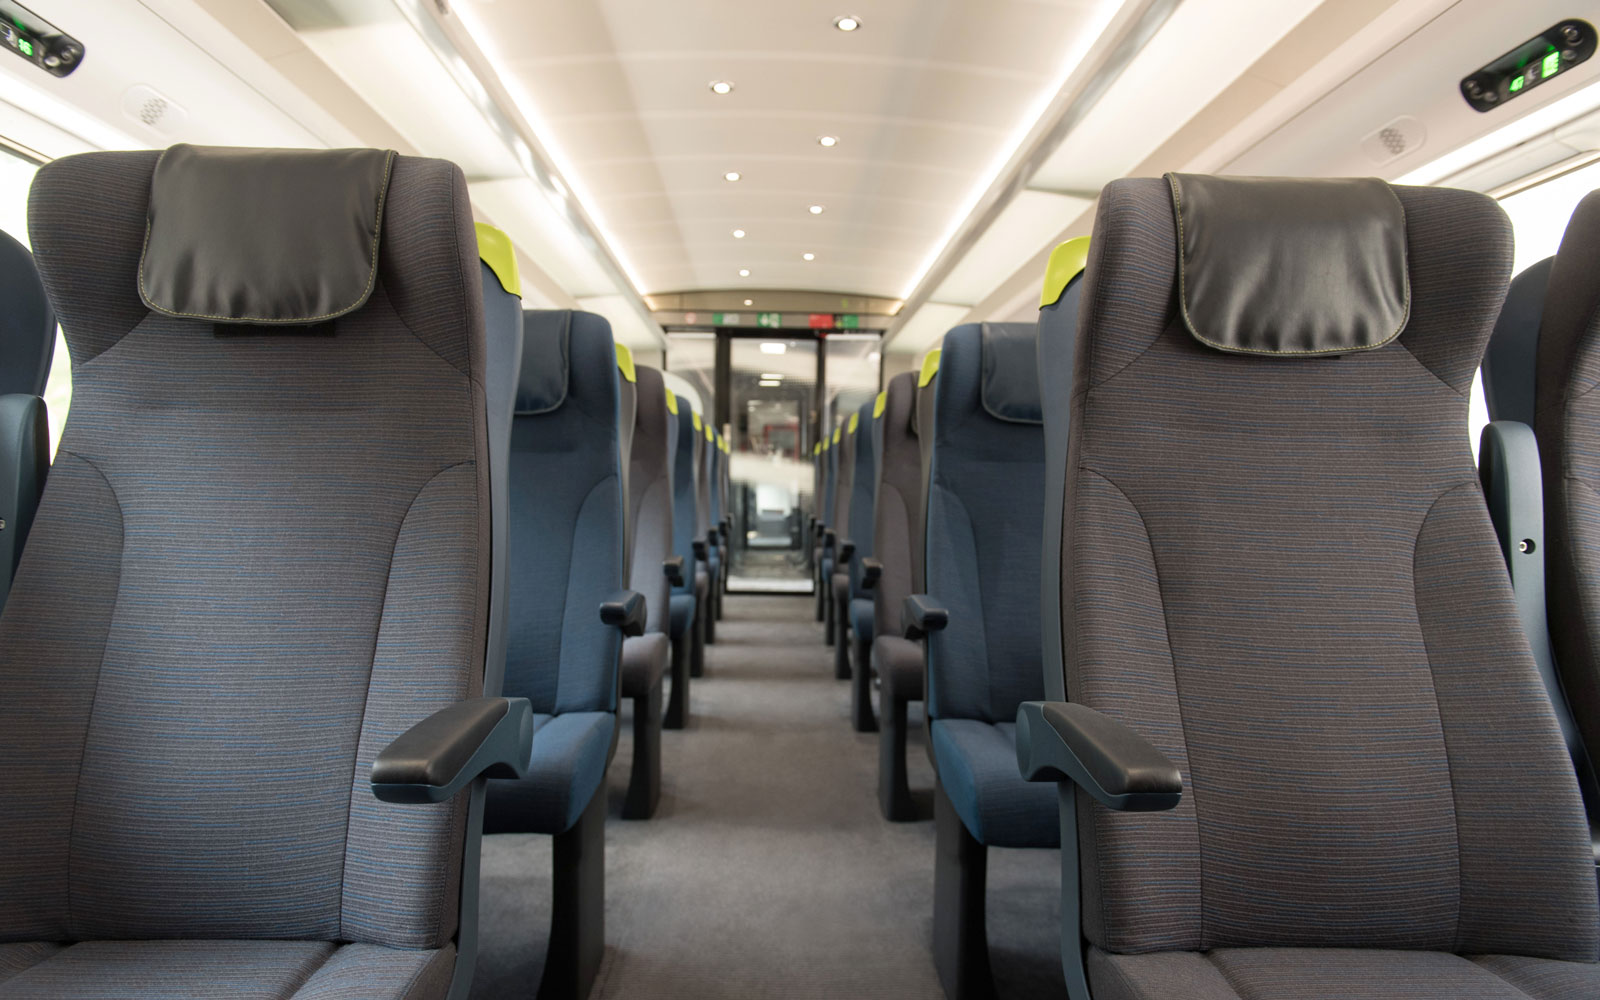 eurostar-finished-interior-EUROSTAR217.jpg